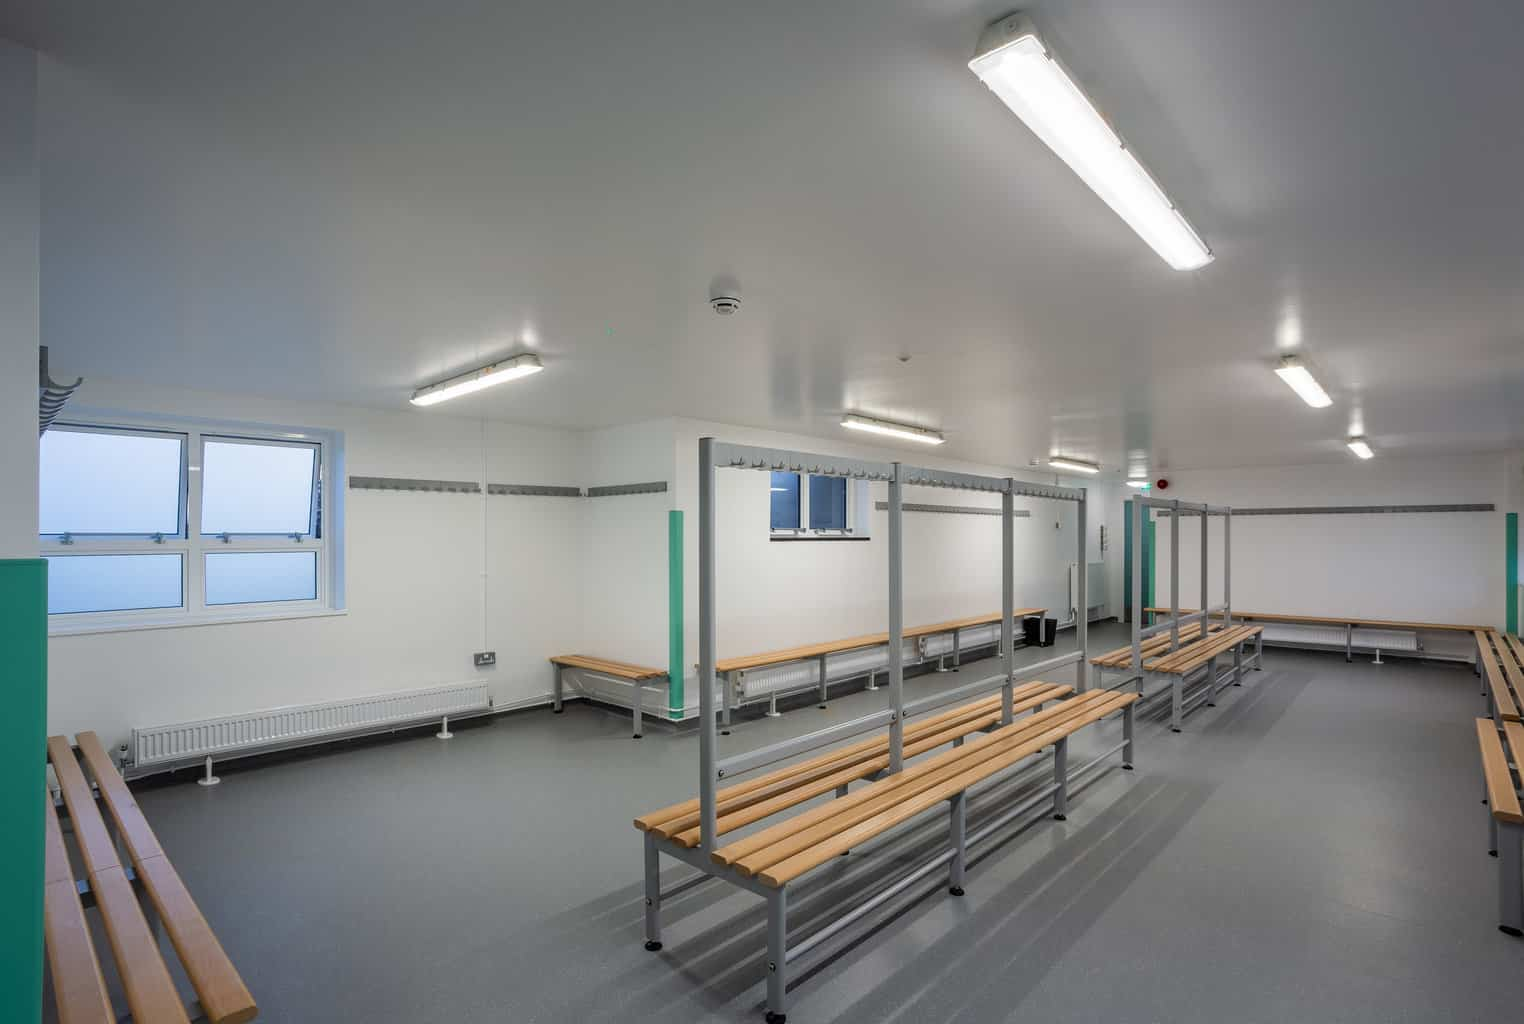 Changing room refurbishment photographed for the architect Kendall Kingscott